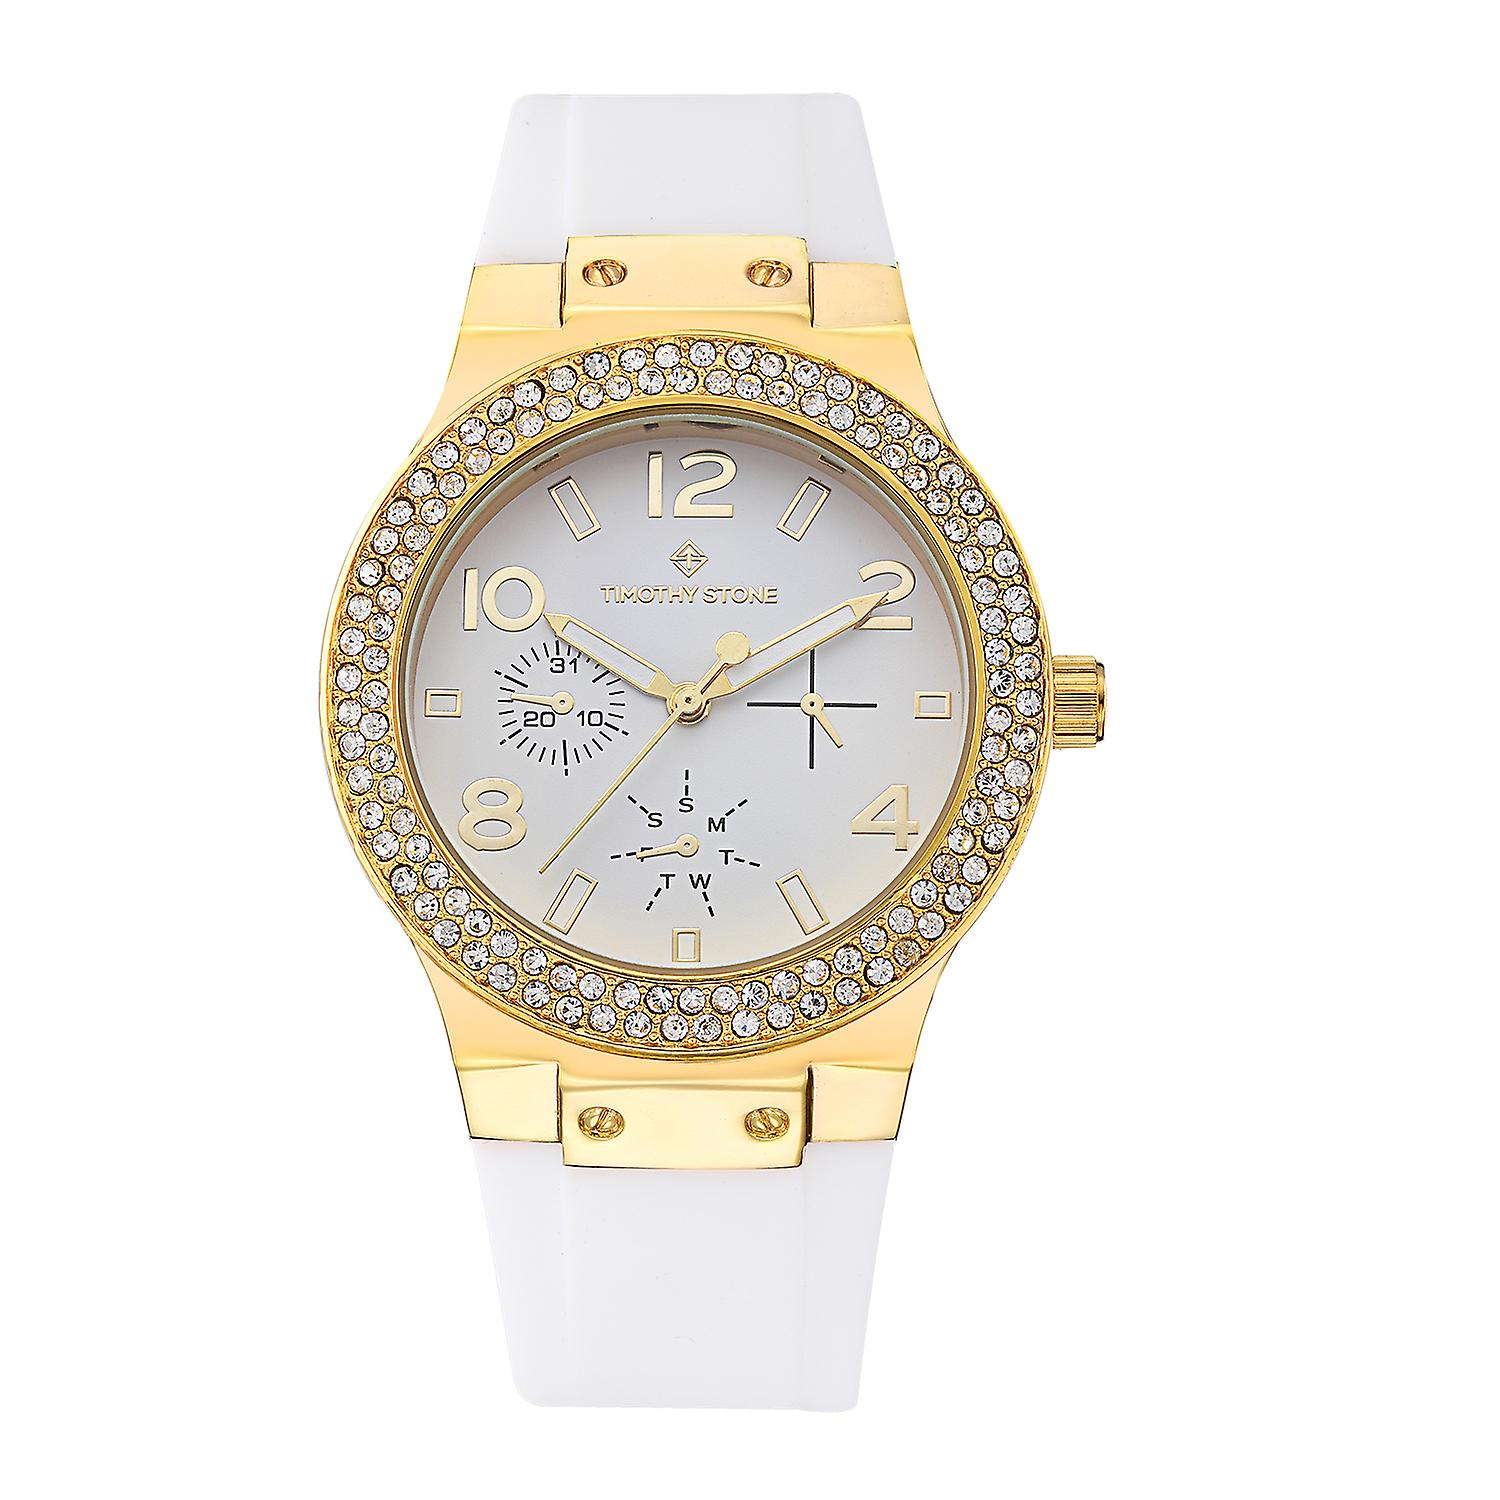 Timothy Stone Women's FA�ON-SILICONE Gold-Tone and White Strap Watch